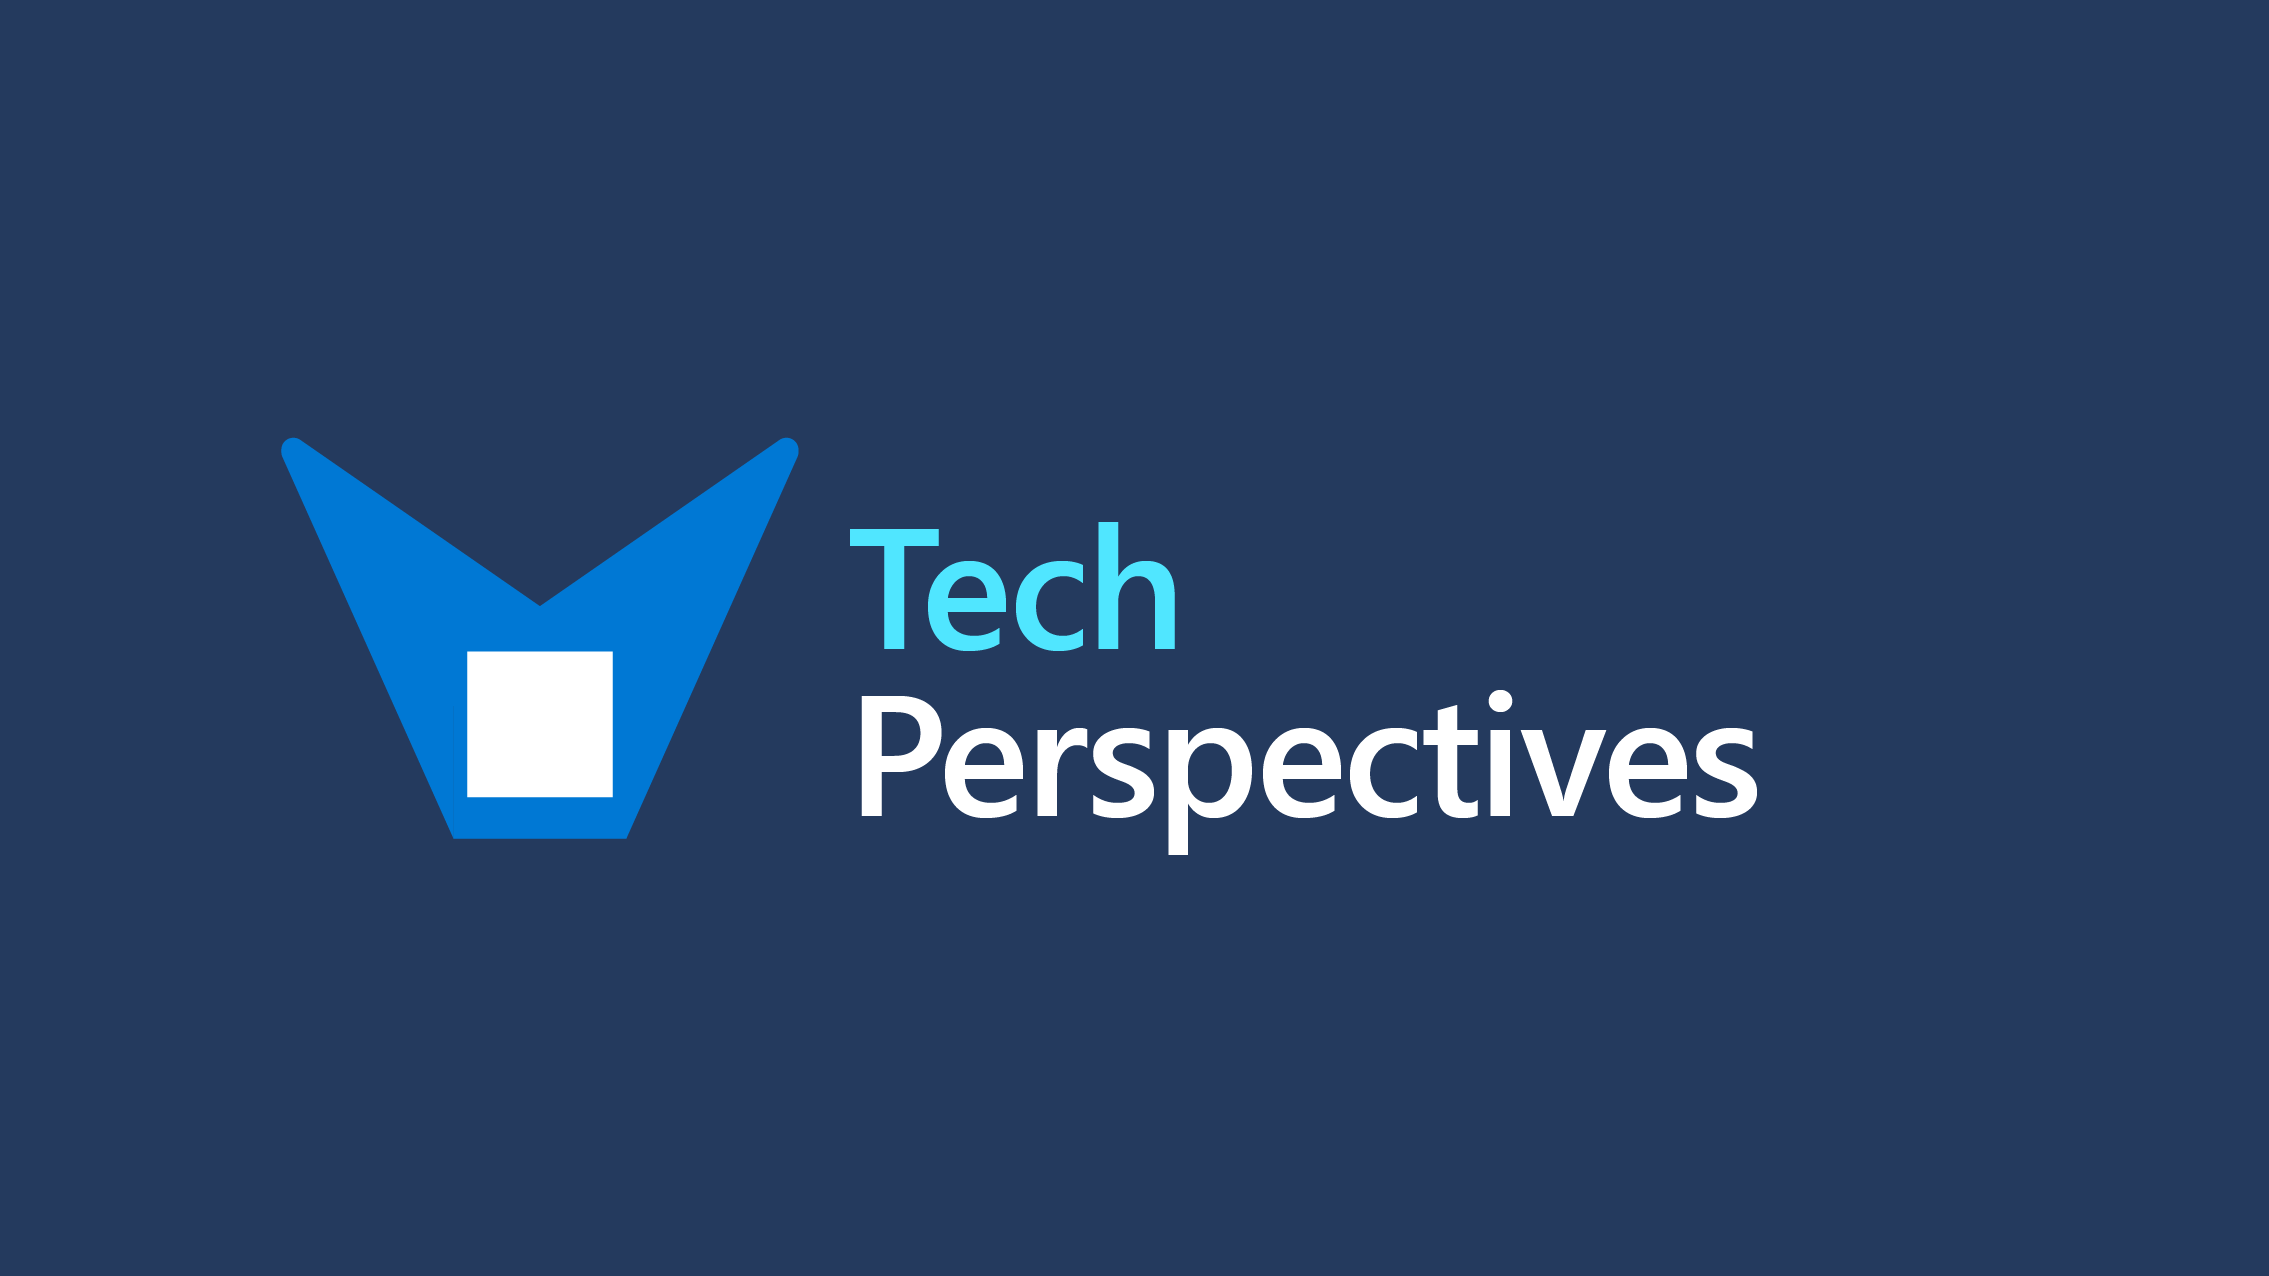 TechPerspectives | by Microsoft Campus Community